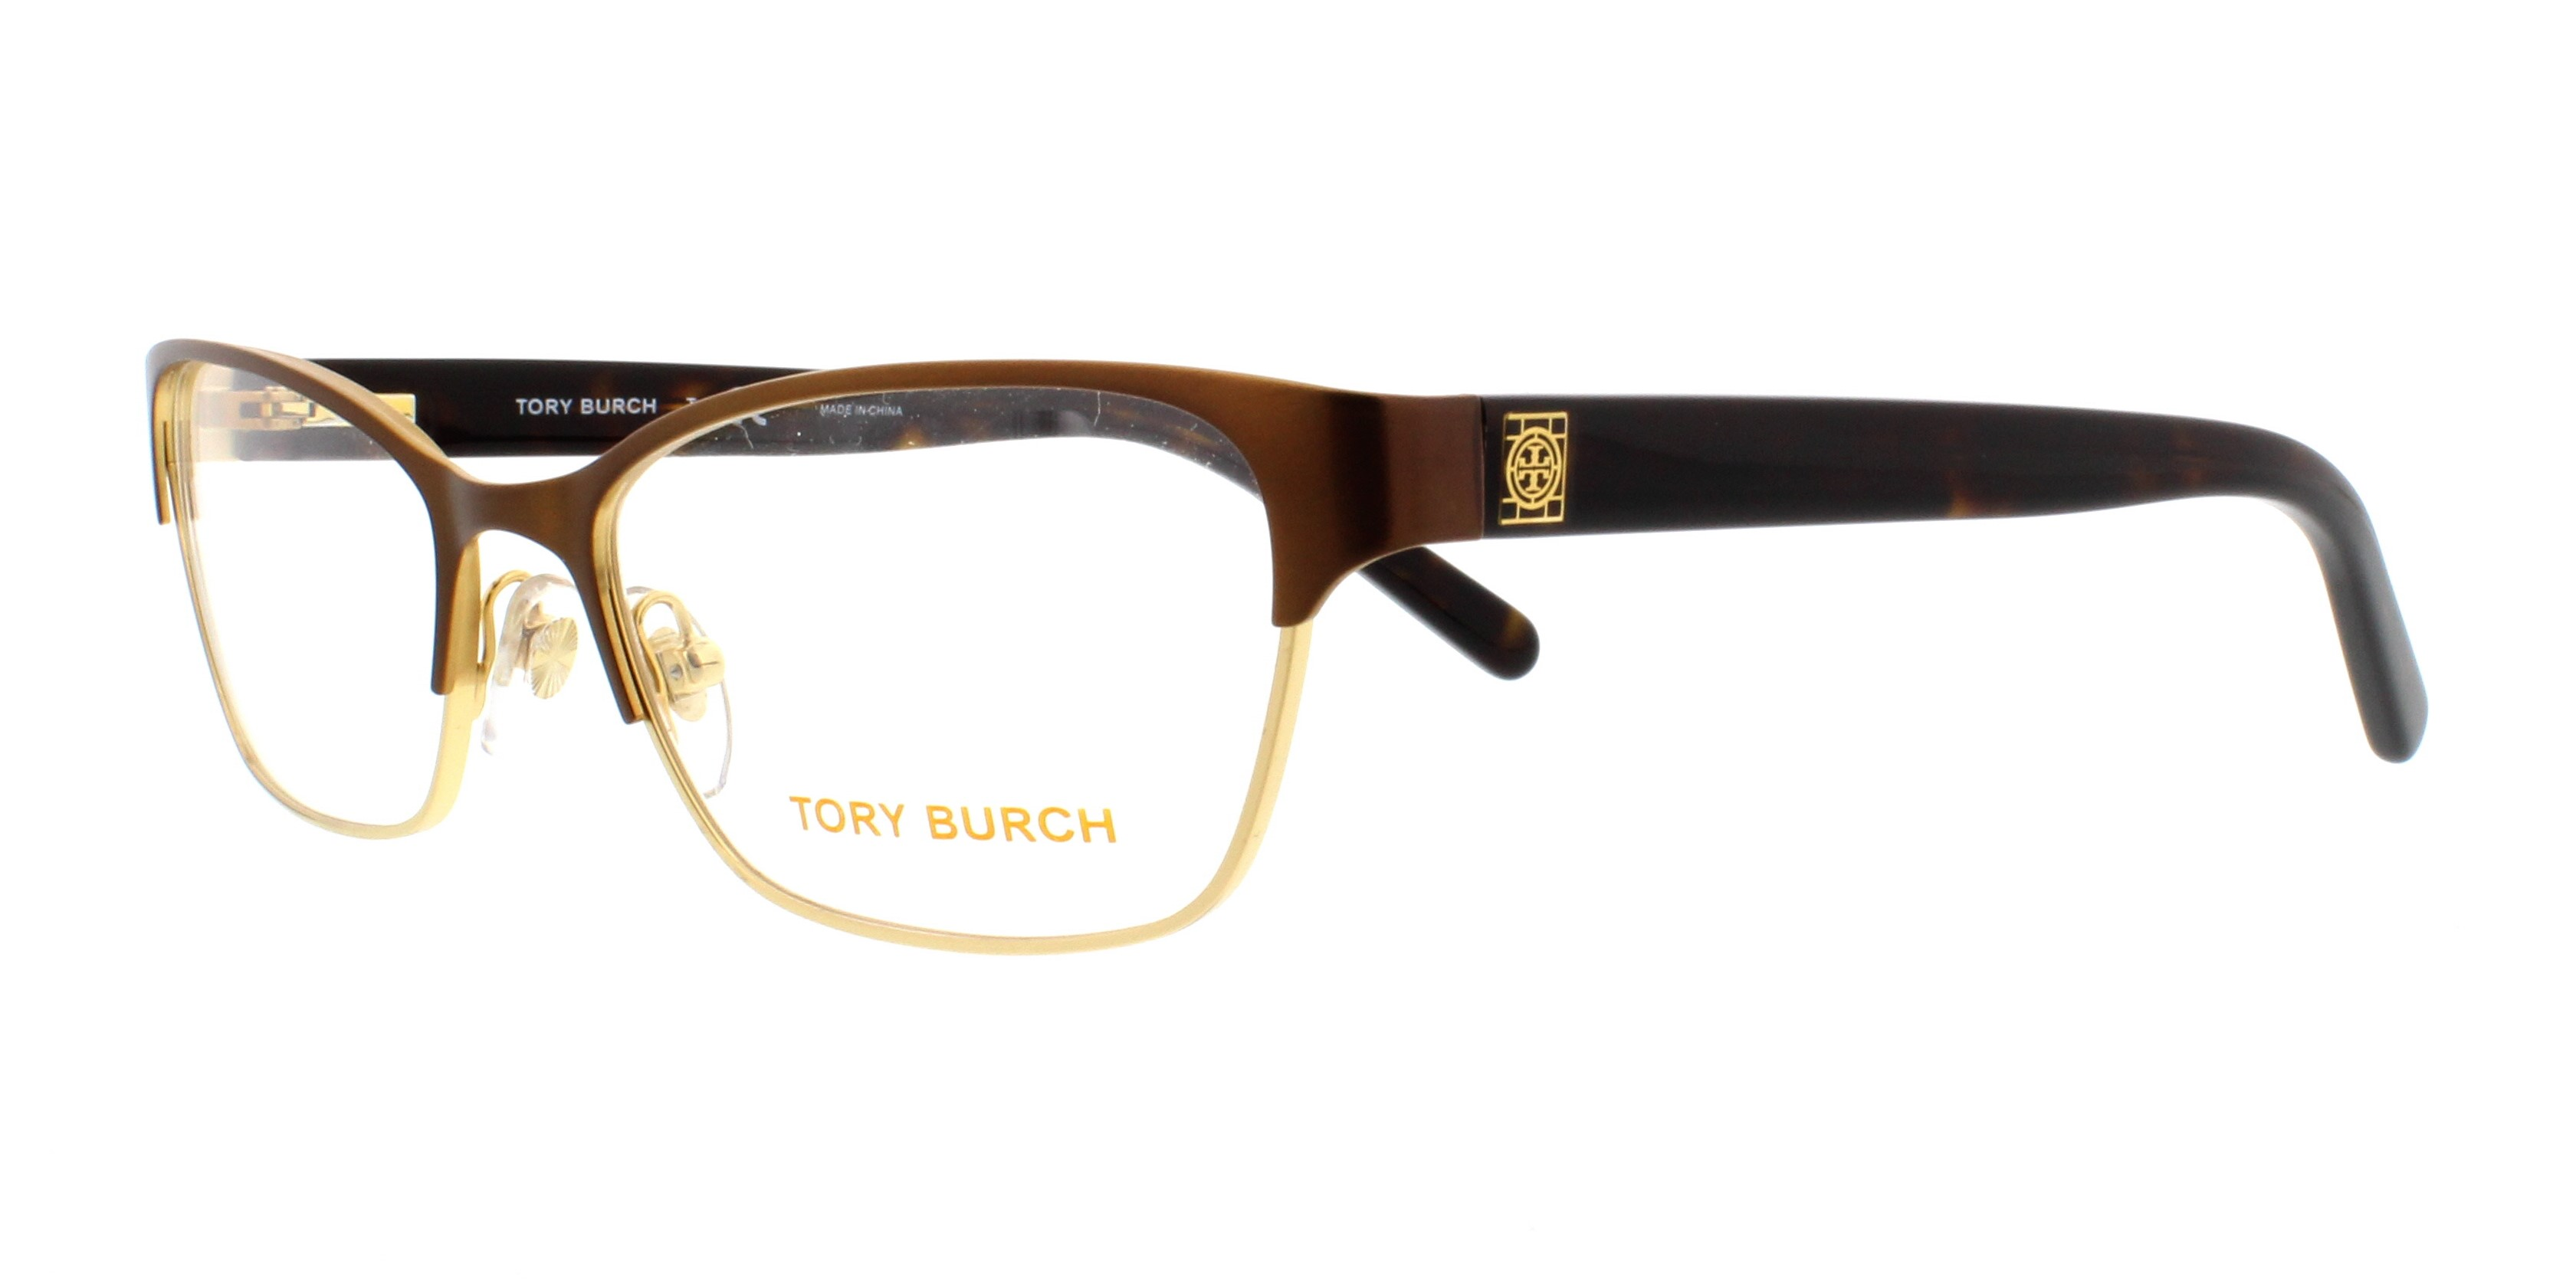 0fba8f779a02 Designer Frames Outlet. Tory Burch TY1040